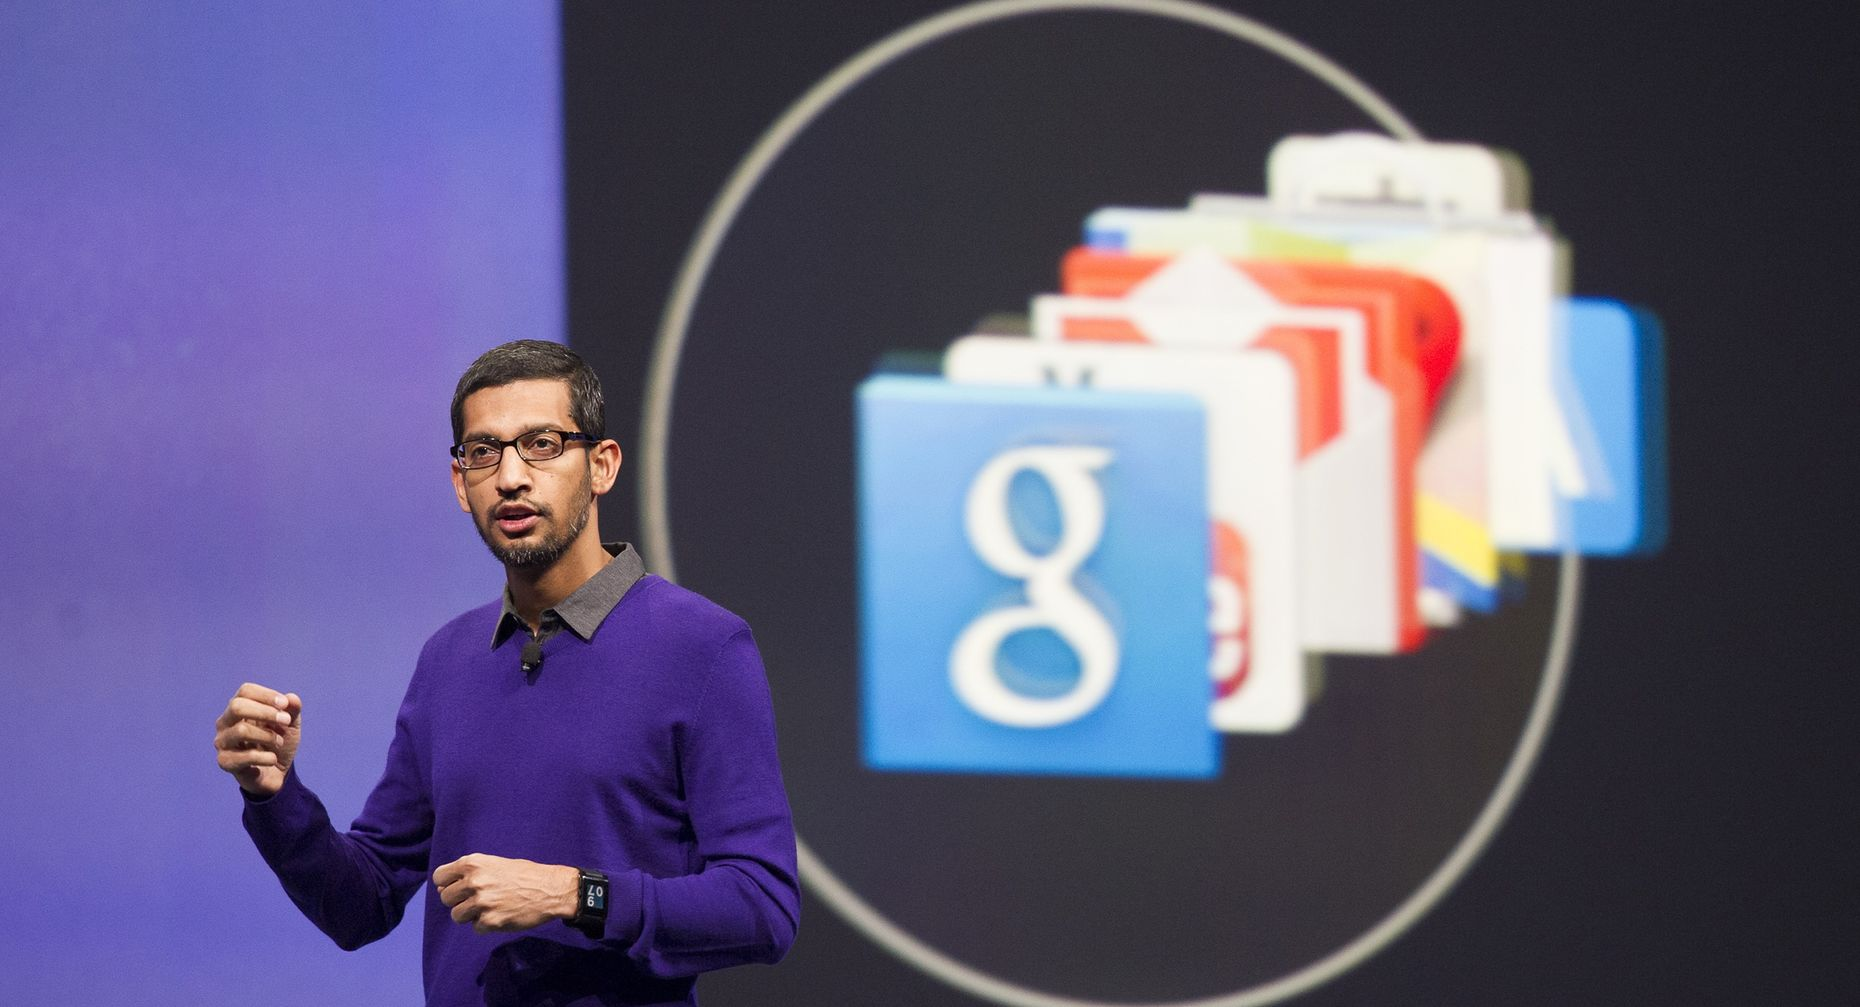 Sundar Pichai oversees Google's products, including ads. Photo by Bloomberg.